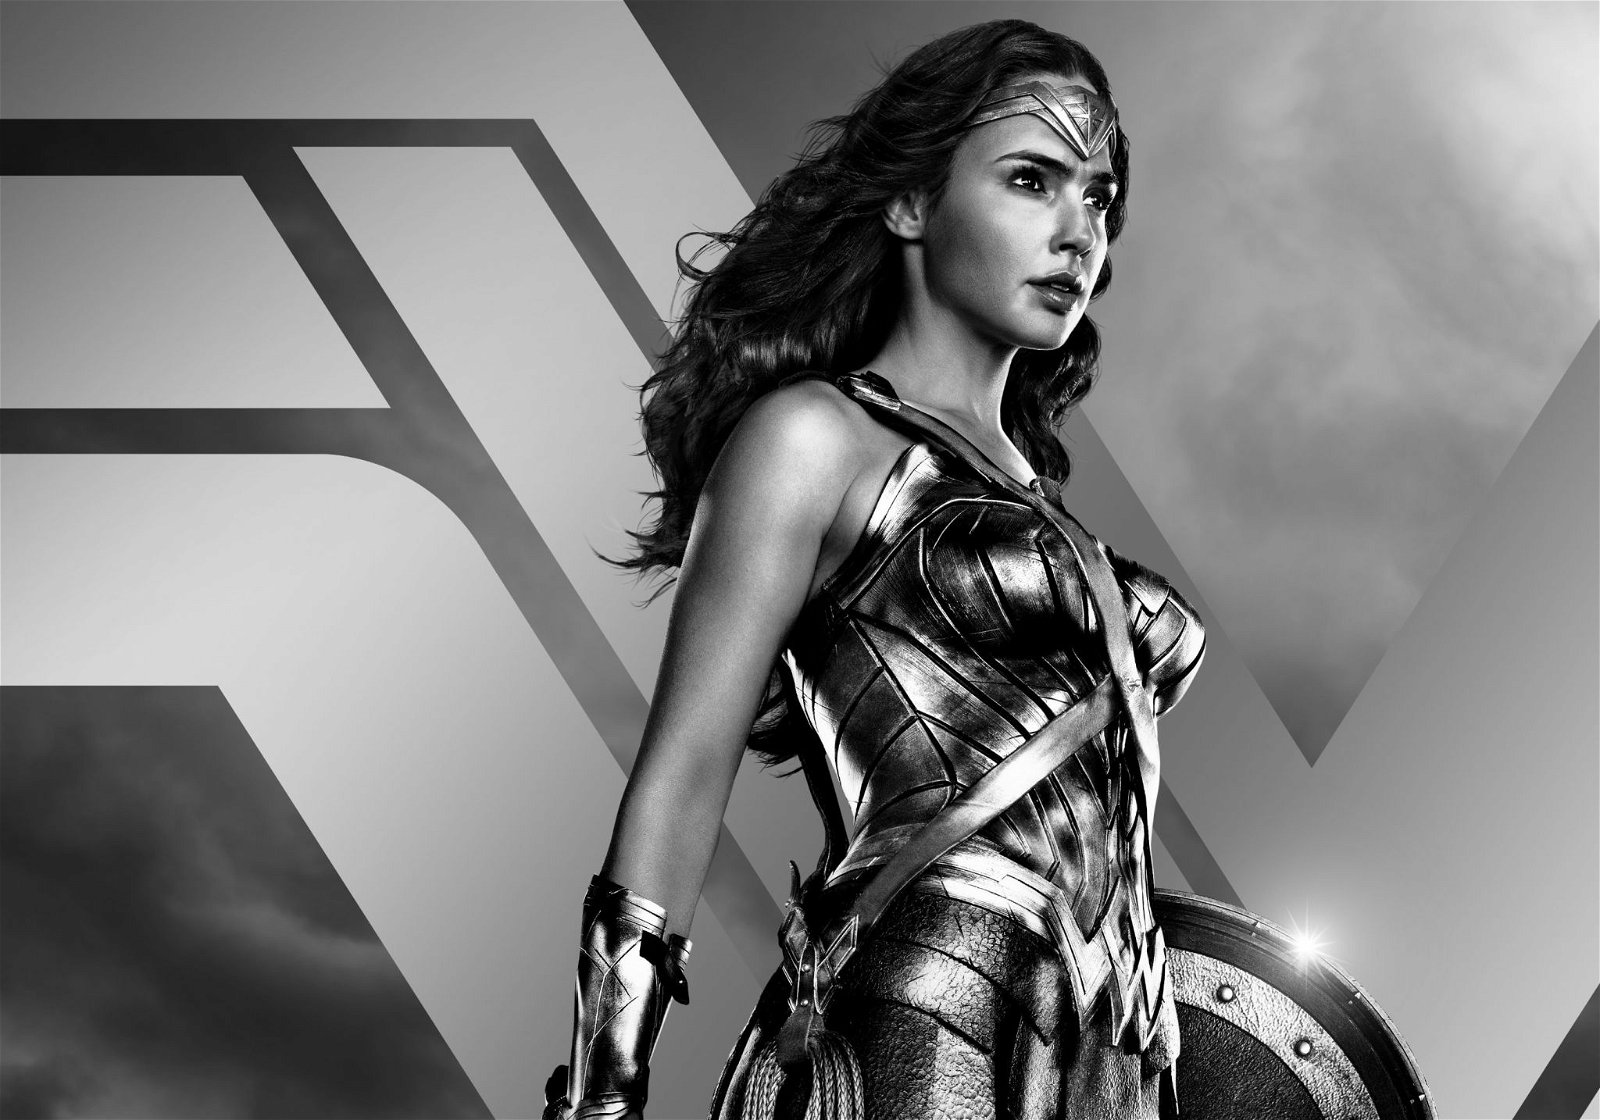 Wonder Woman, The Snyder Cut, Zack Snyder's Justice League